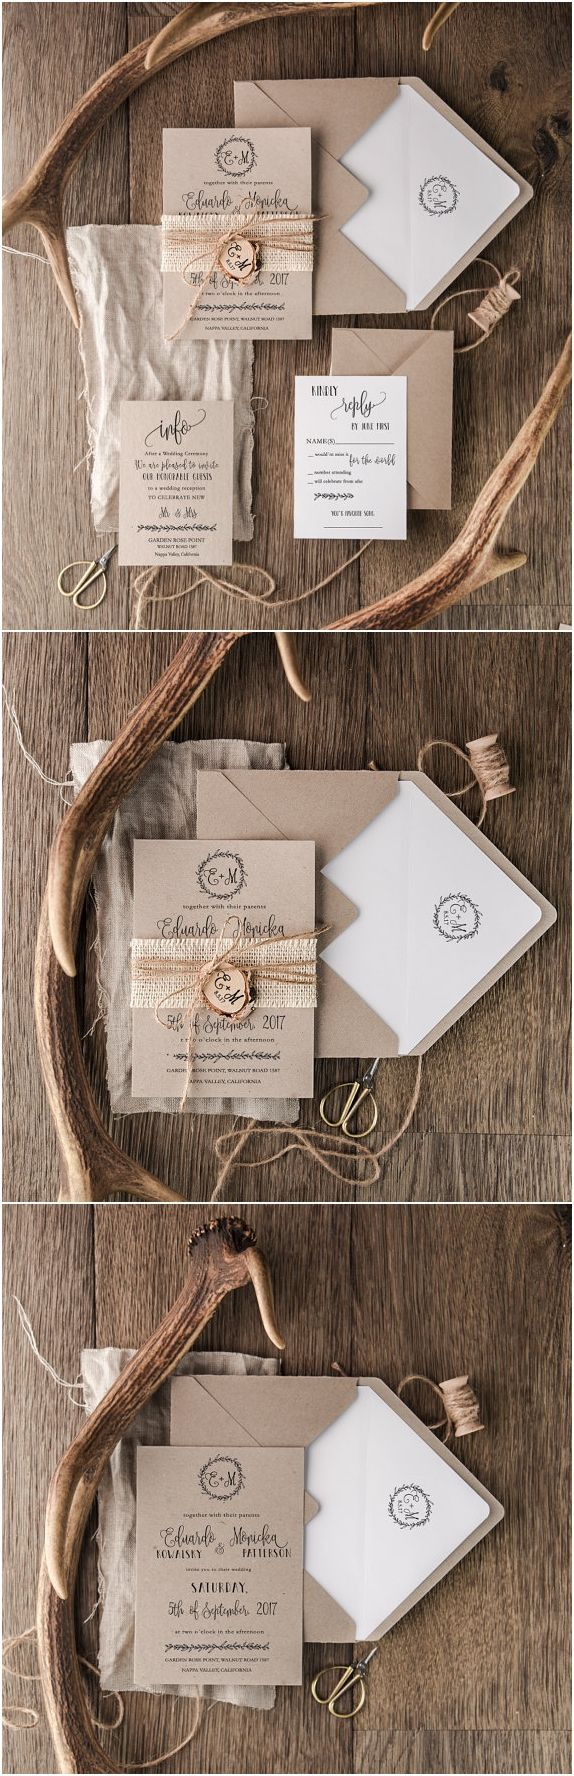 Craft Wedding Invitation Suite, Burlap Wedding Invitation, Wooden Slice Invitations, Monogram Invites